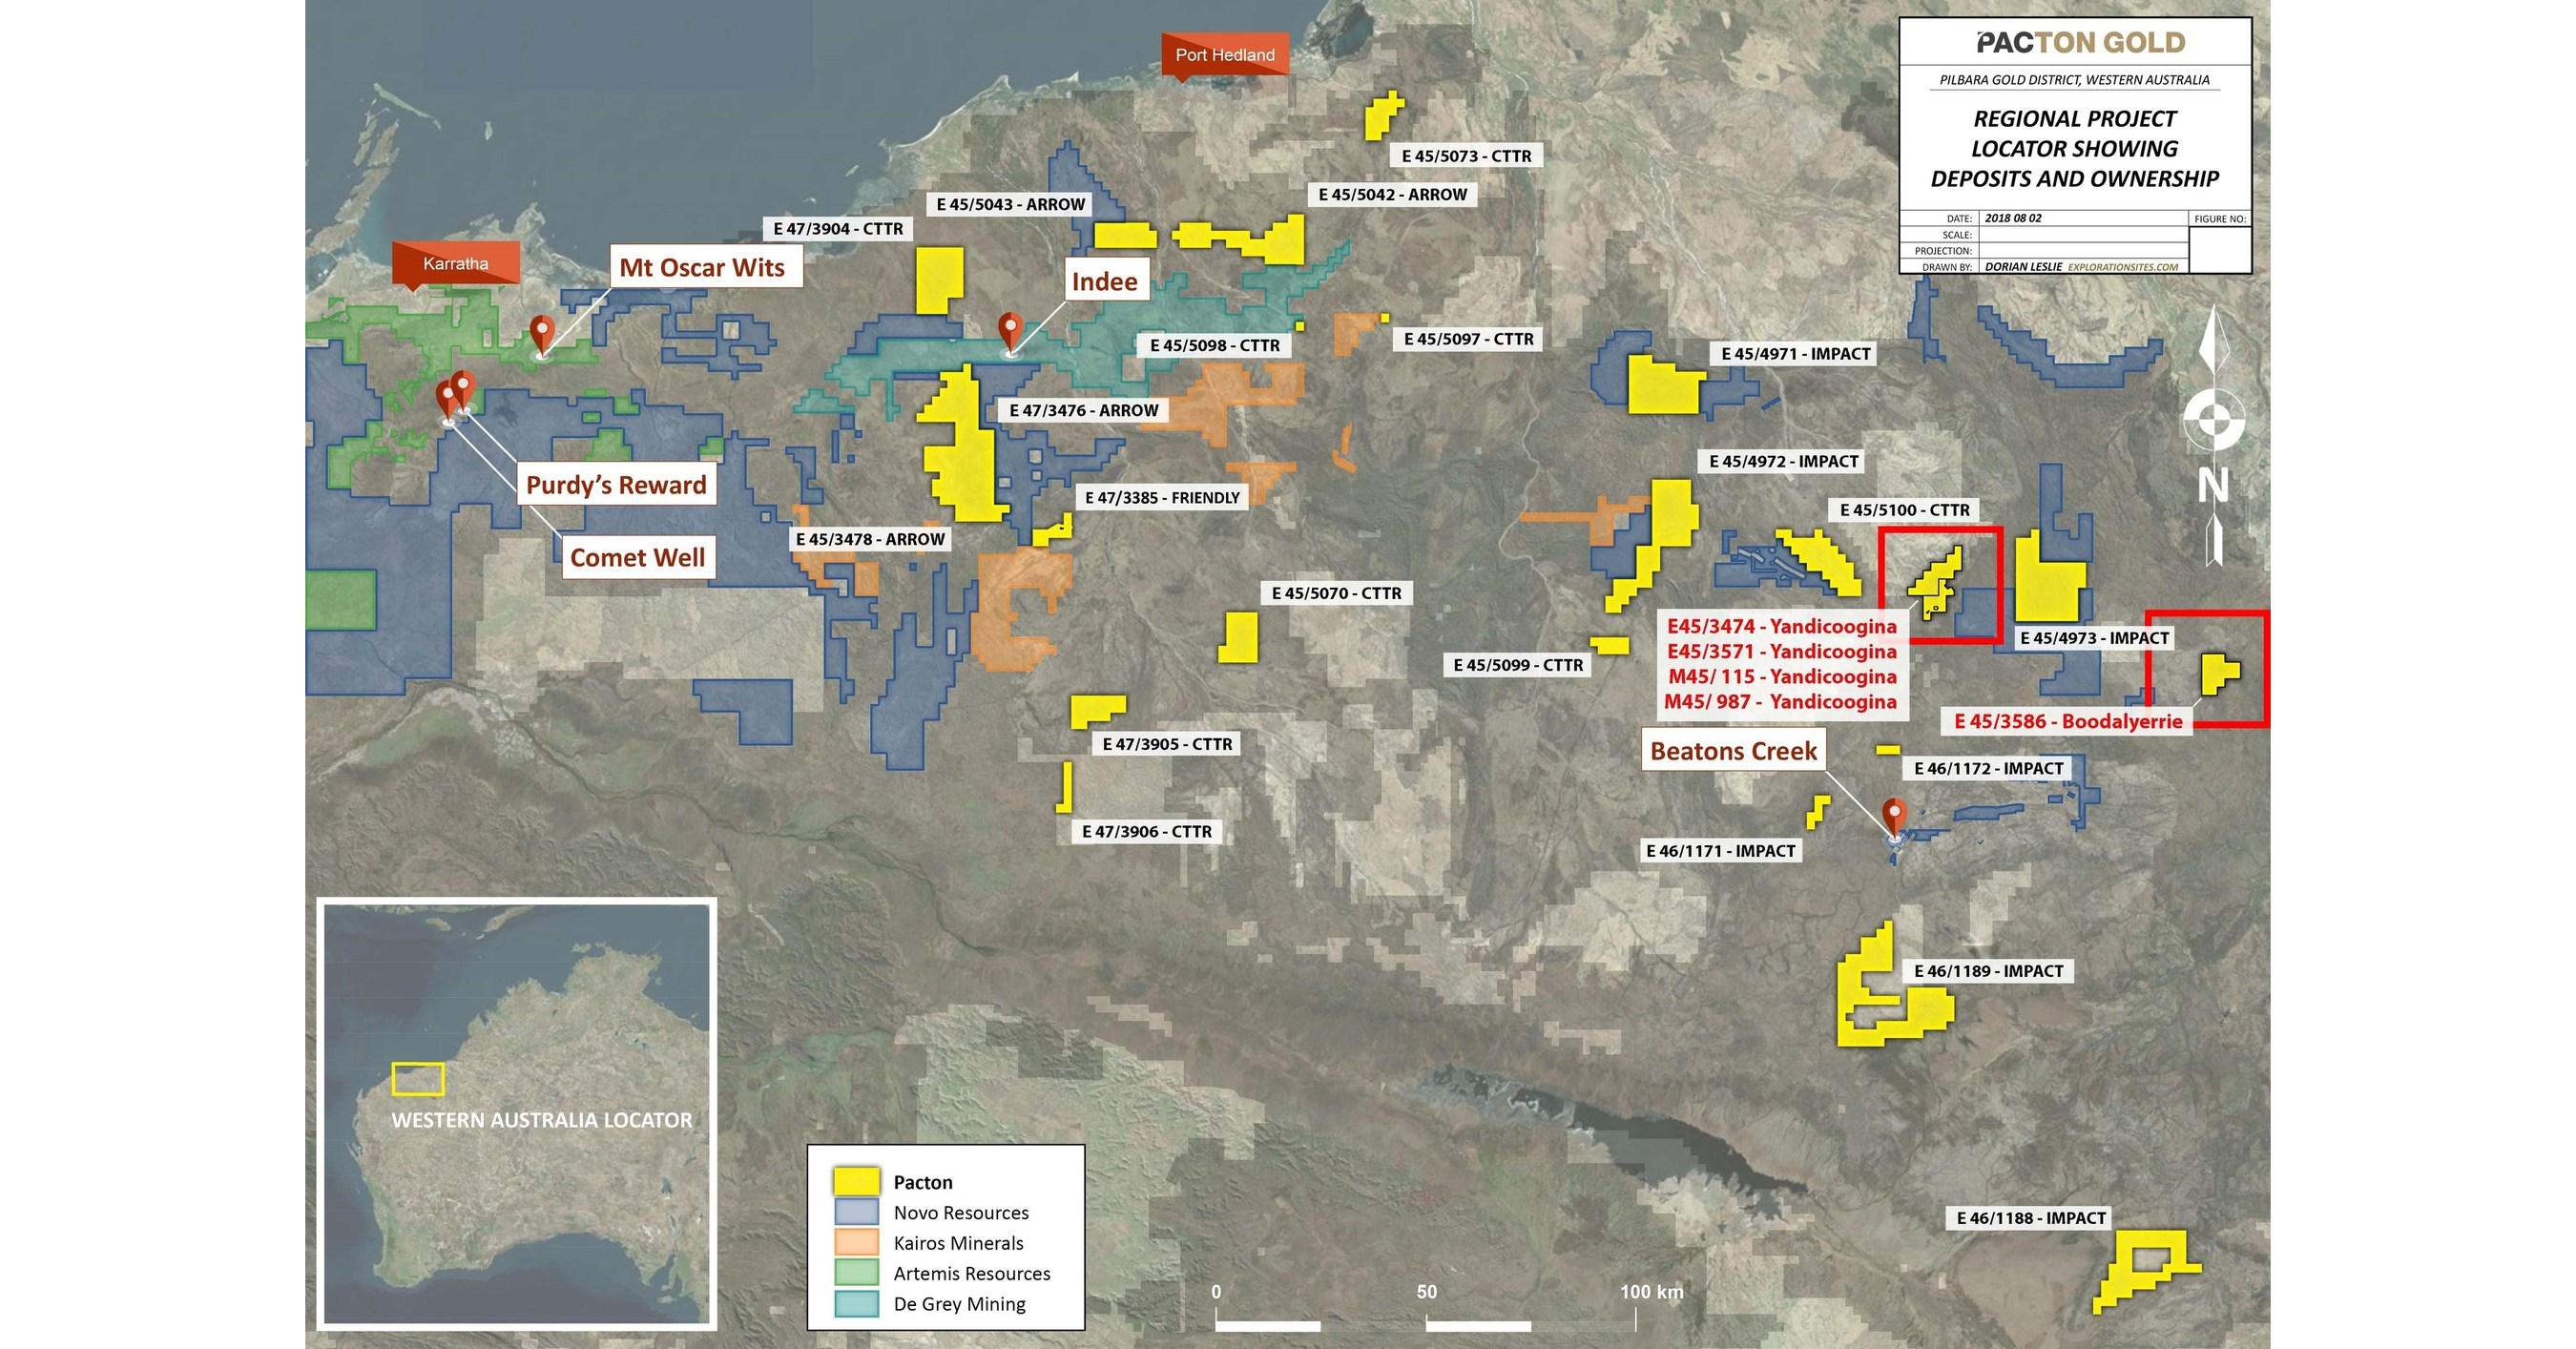 Pacton Gold to Acquire 2 More Granted Mining Leases and Further Increase its Strategic Property Portfolio in Western Australia's Pilbara Mining Region